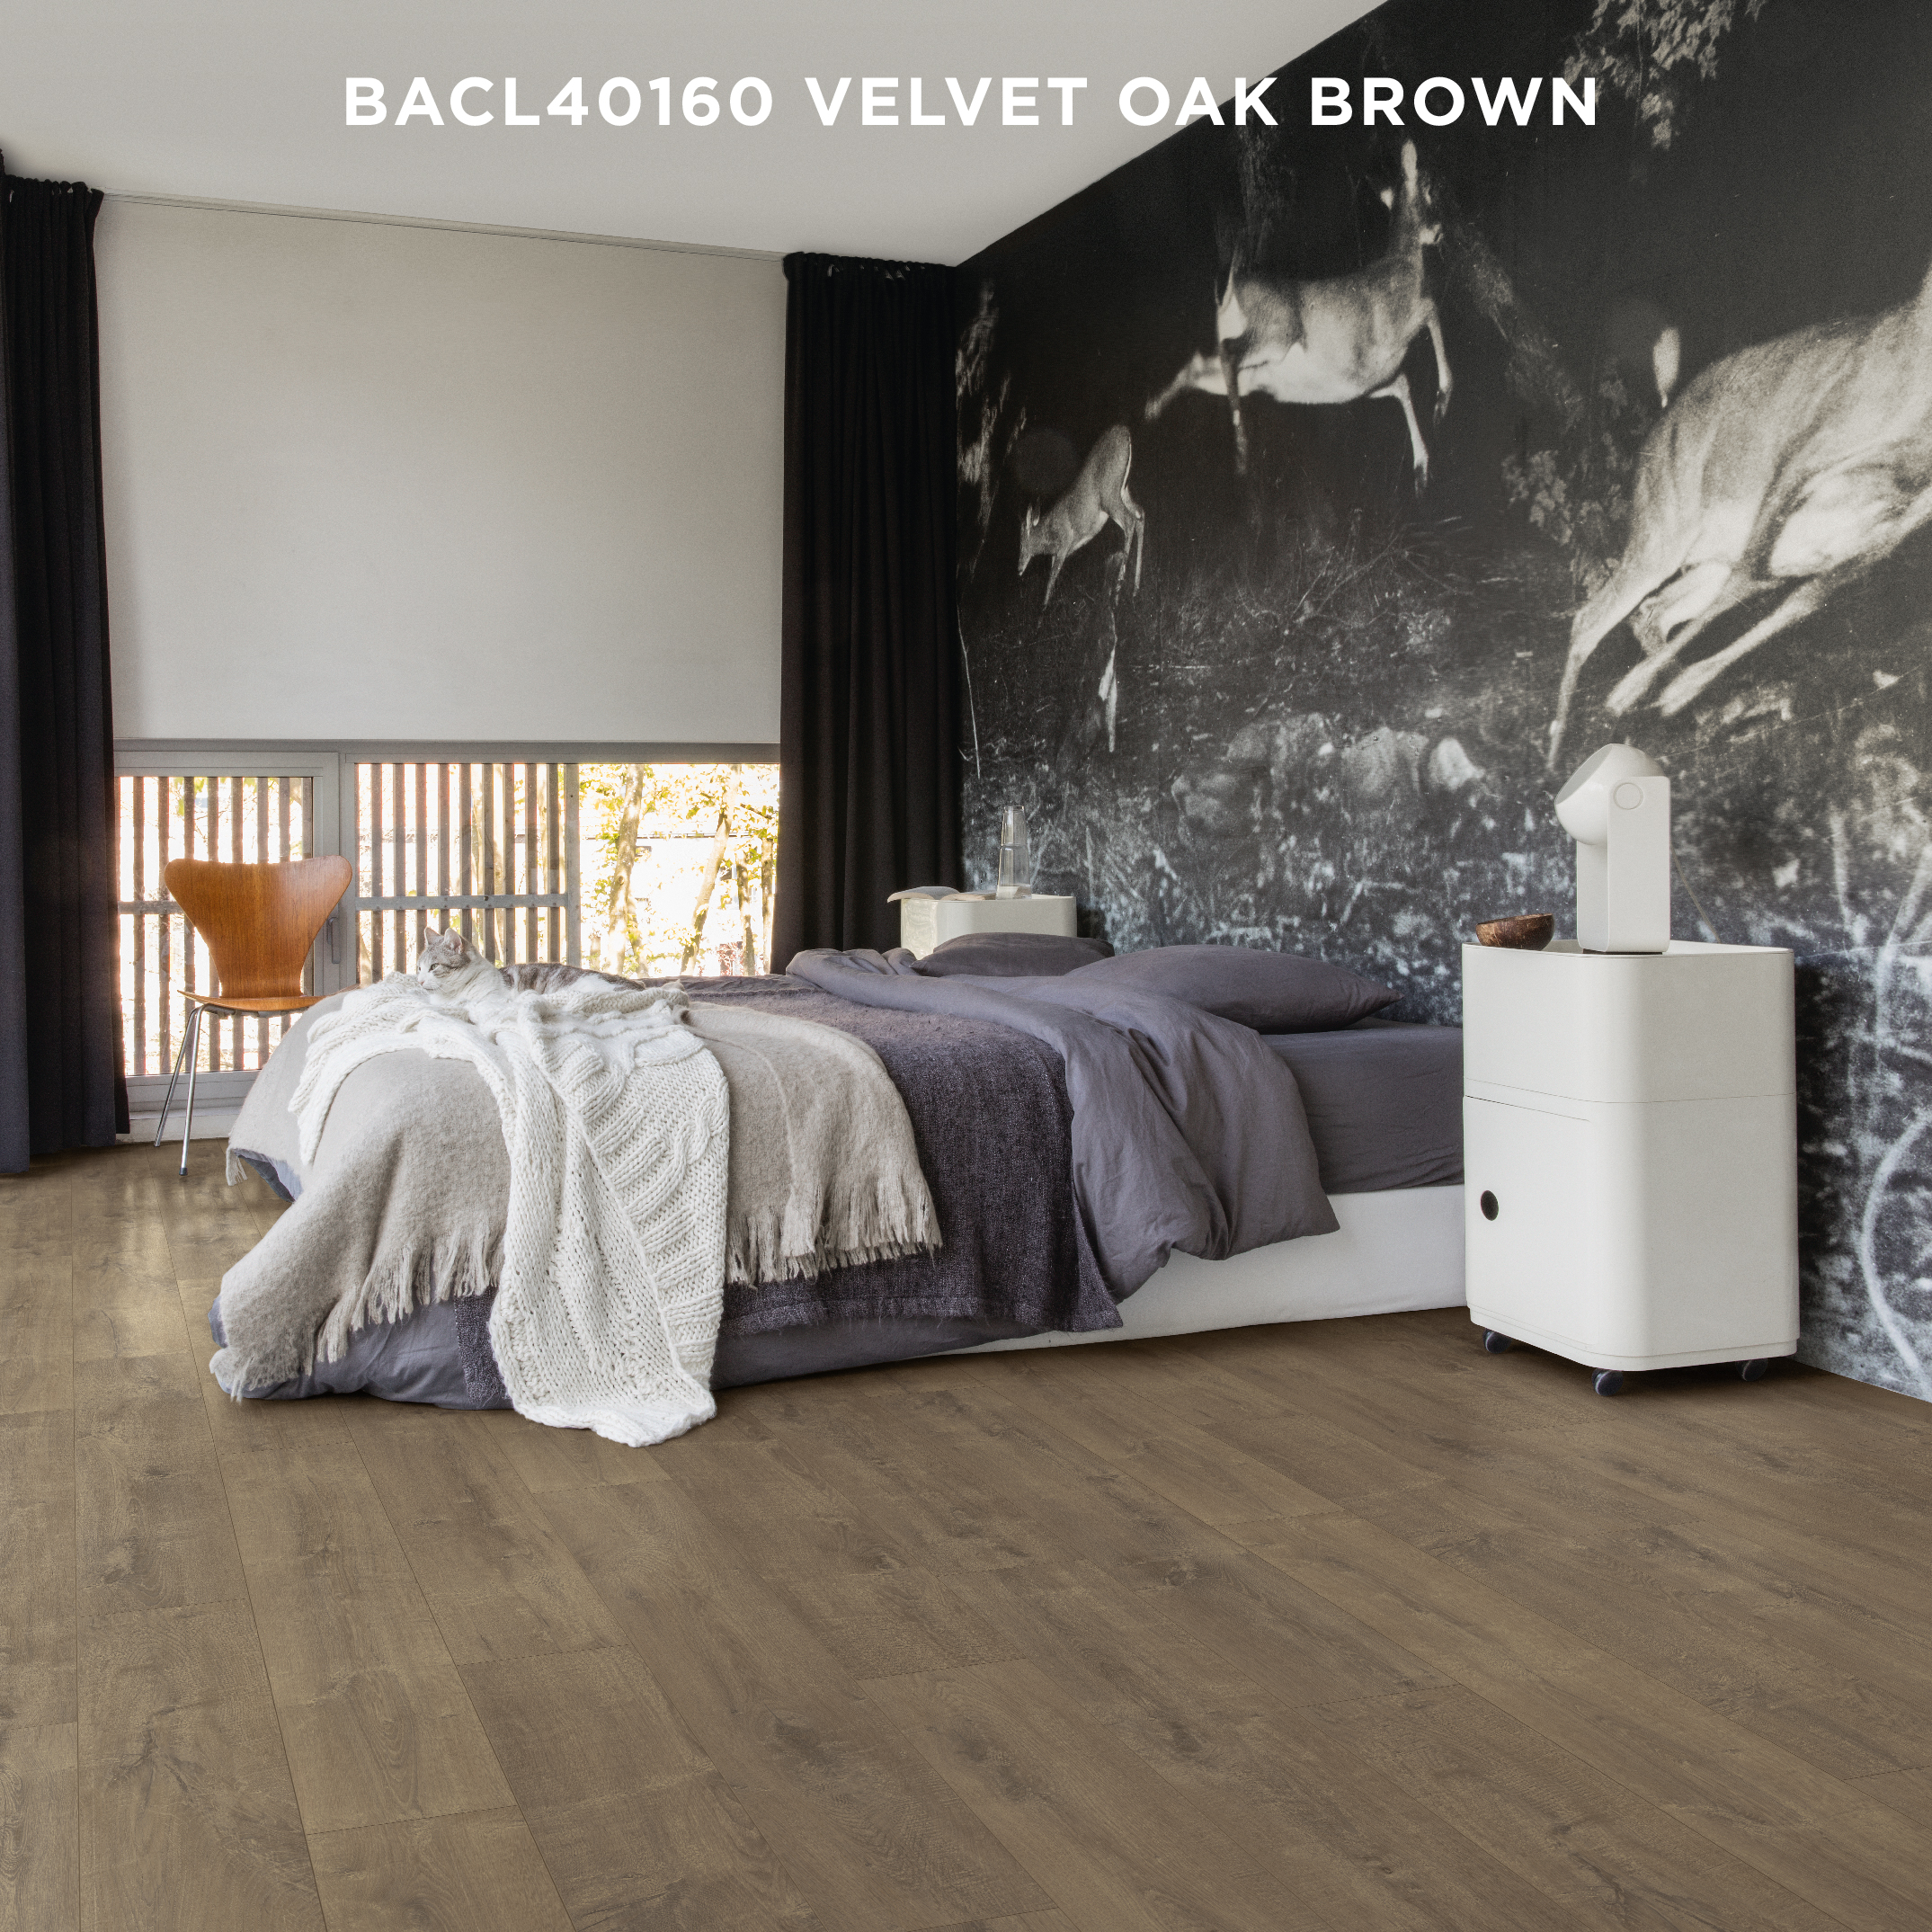 BACL40160 VELVET OAK BROWN (New)